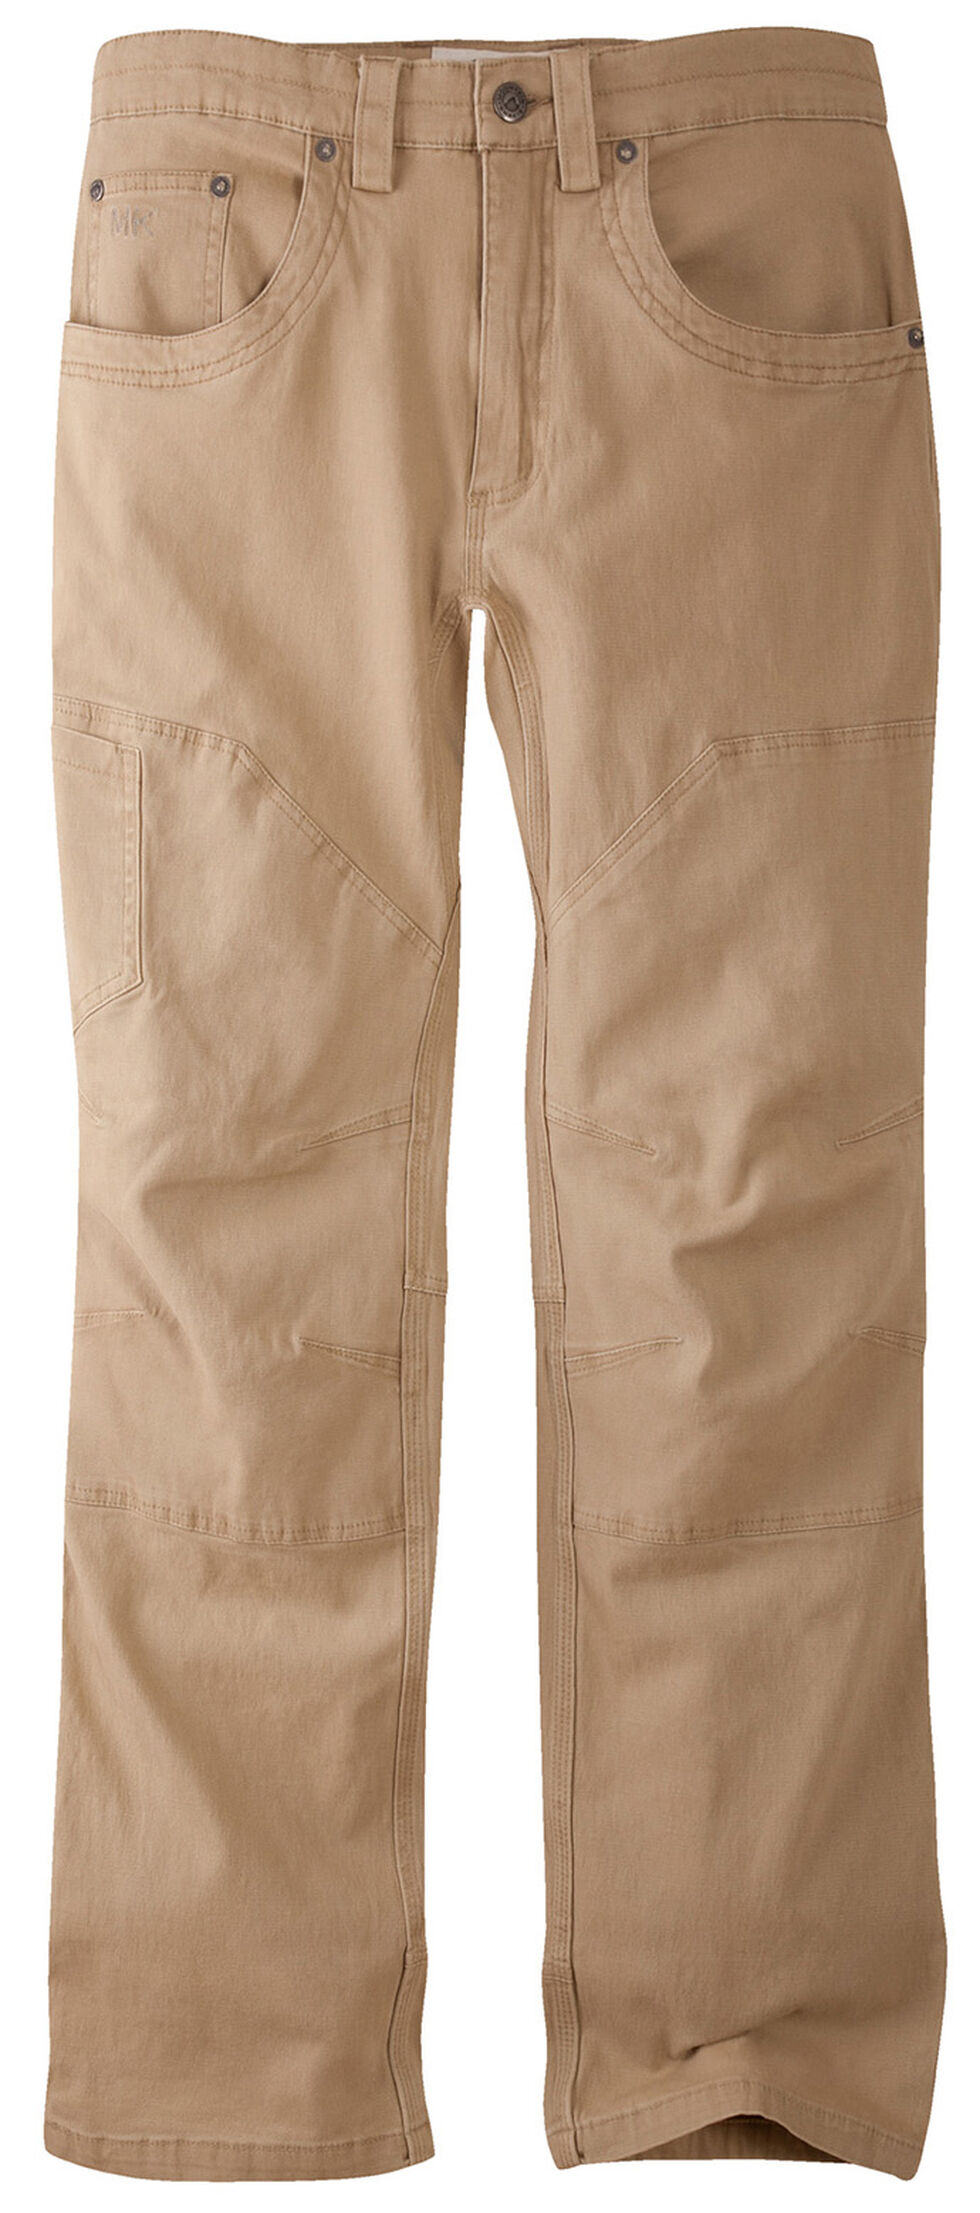 Mountain Khakis Yellowstone Camber 107 Pants - Relaxed Fit, Light Brown, hi-res